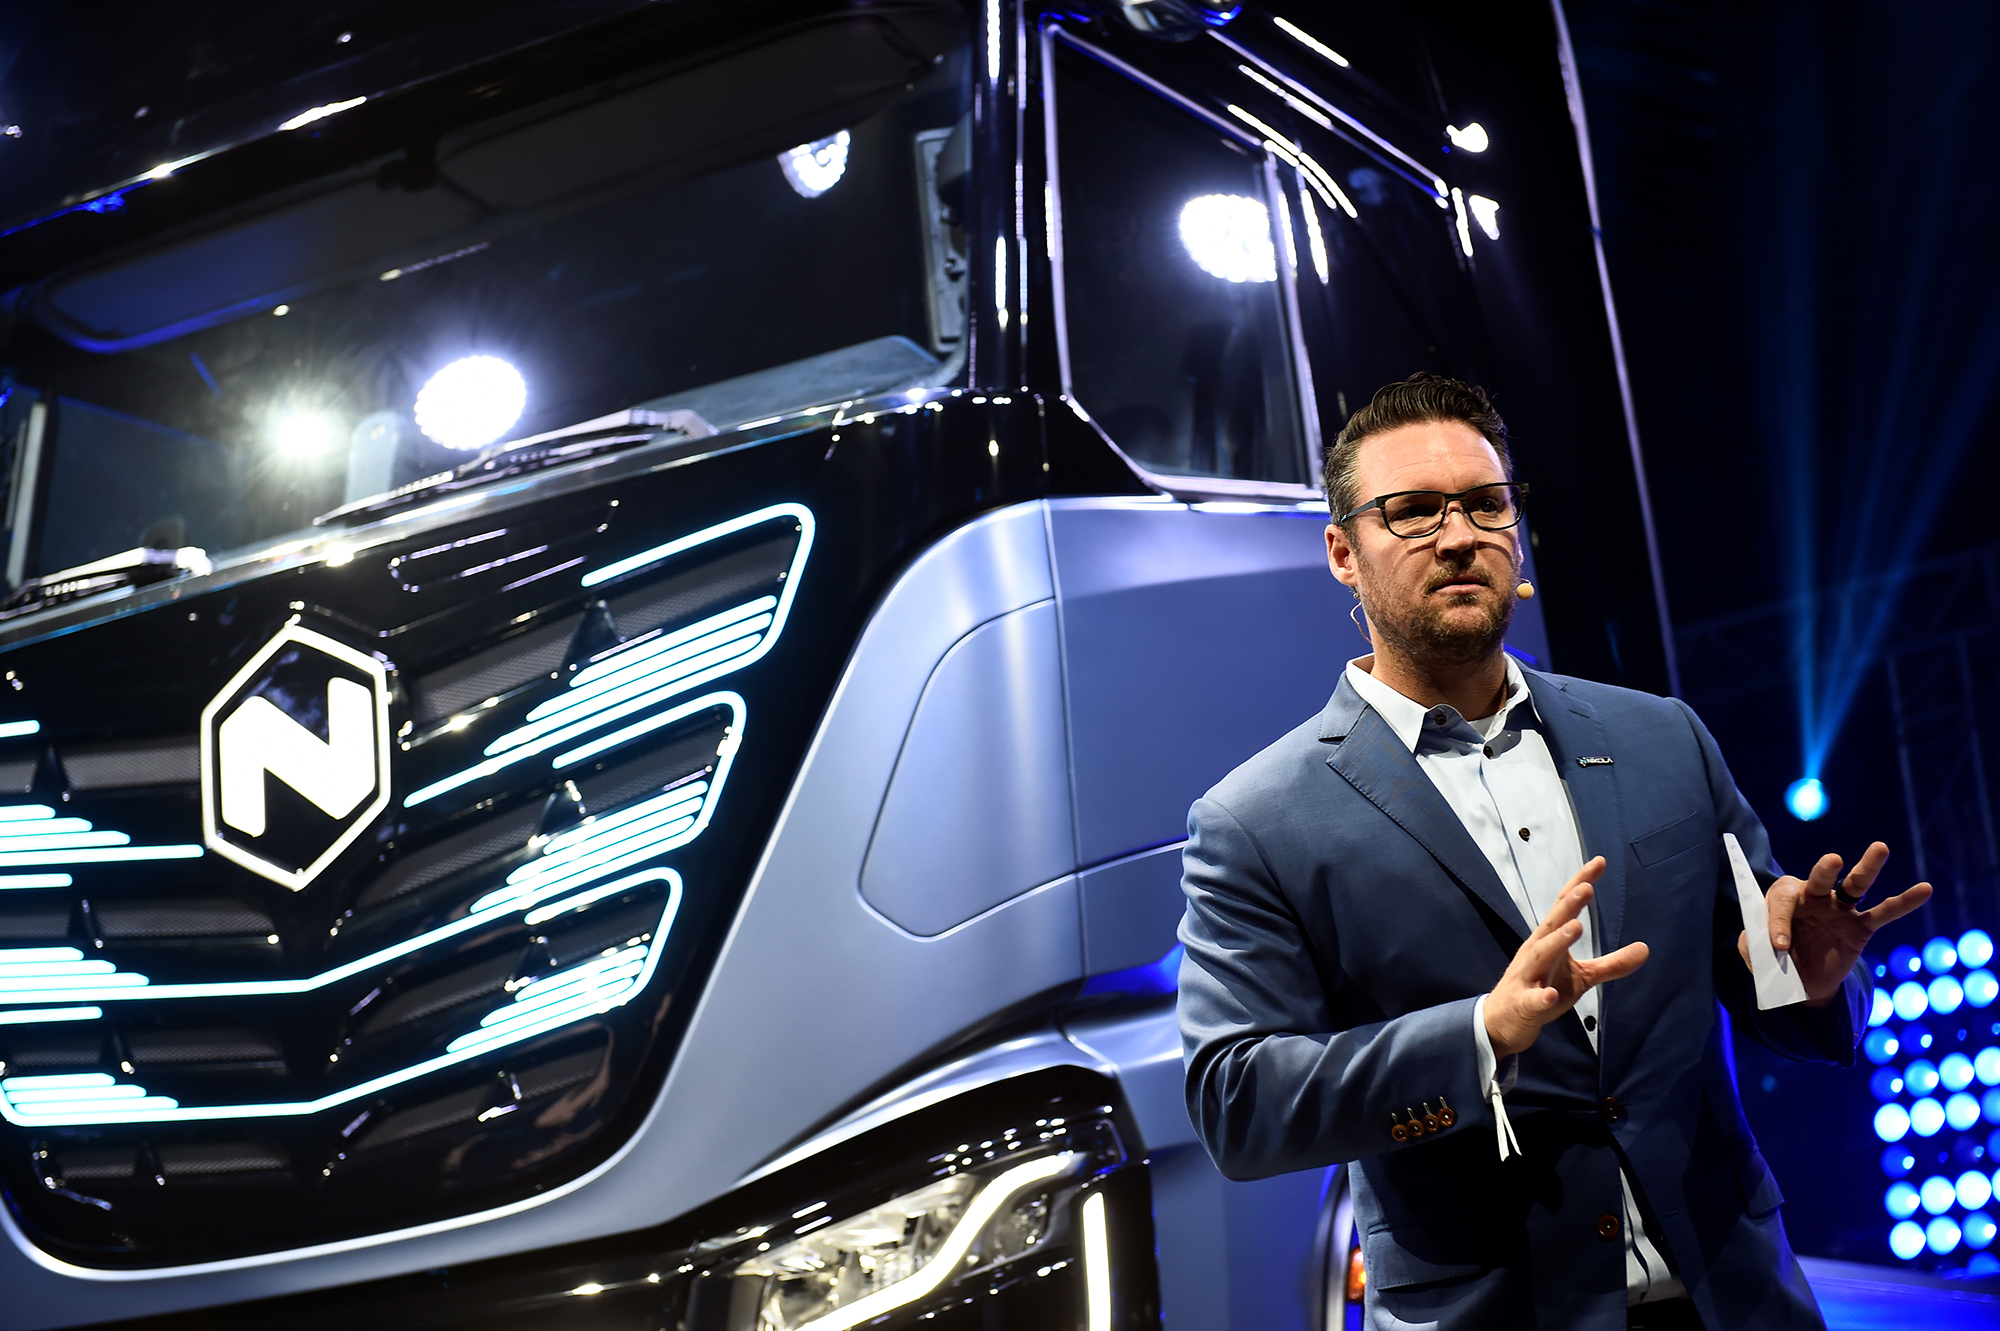 Nikola: Former executive chairman misled investors numerous times